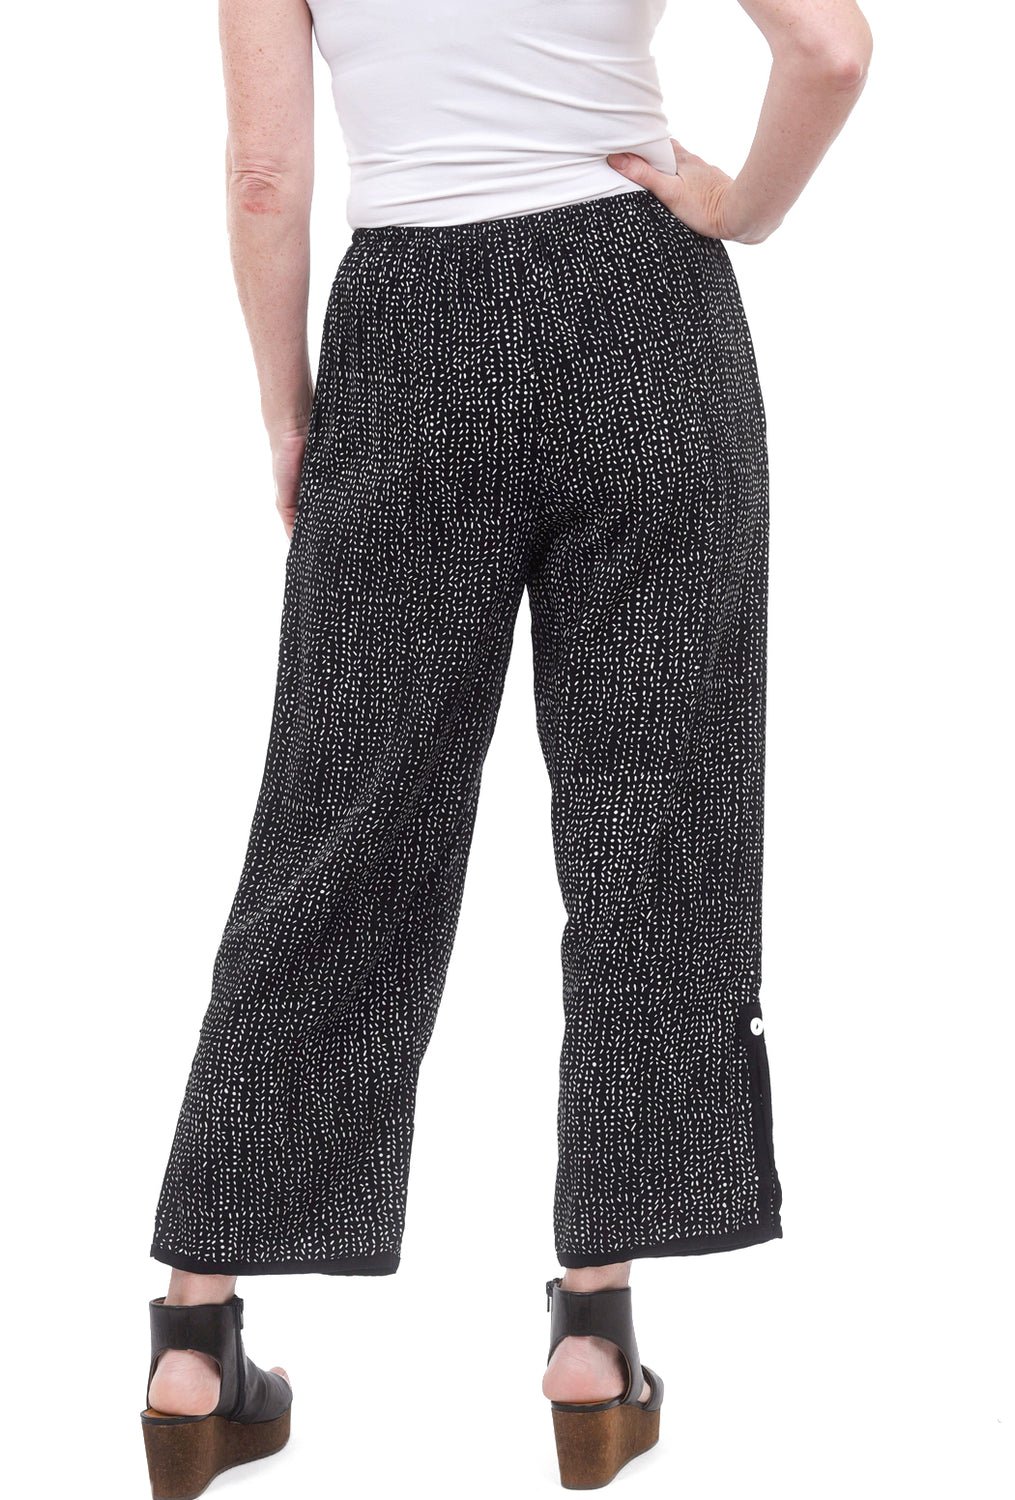 BB Dot Pants, Black